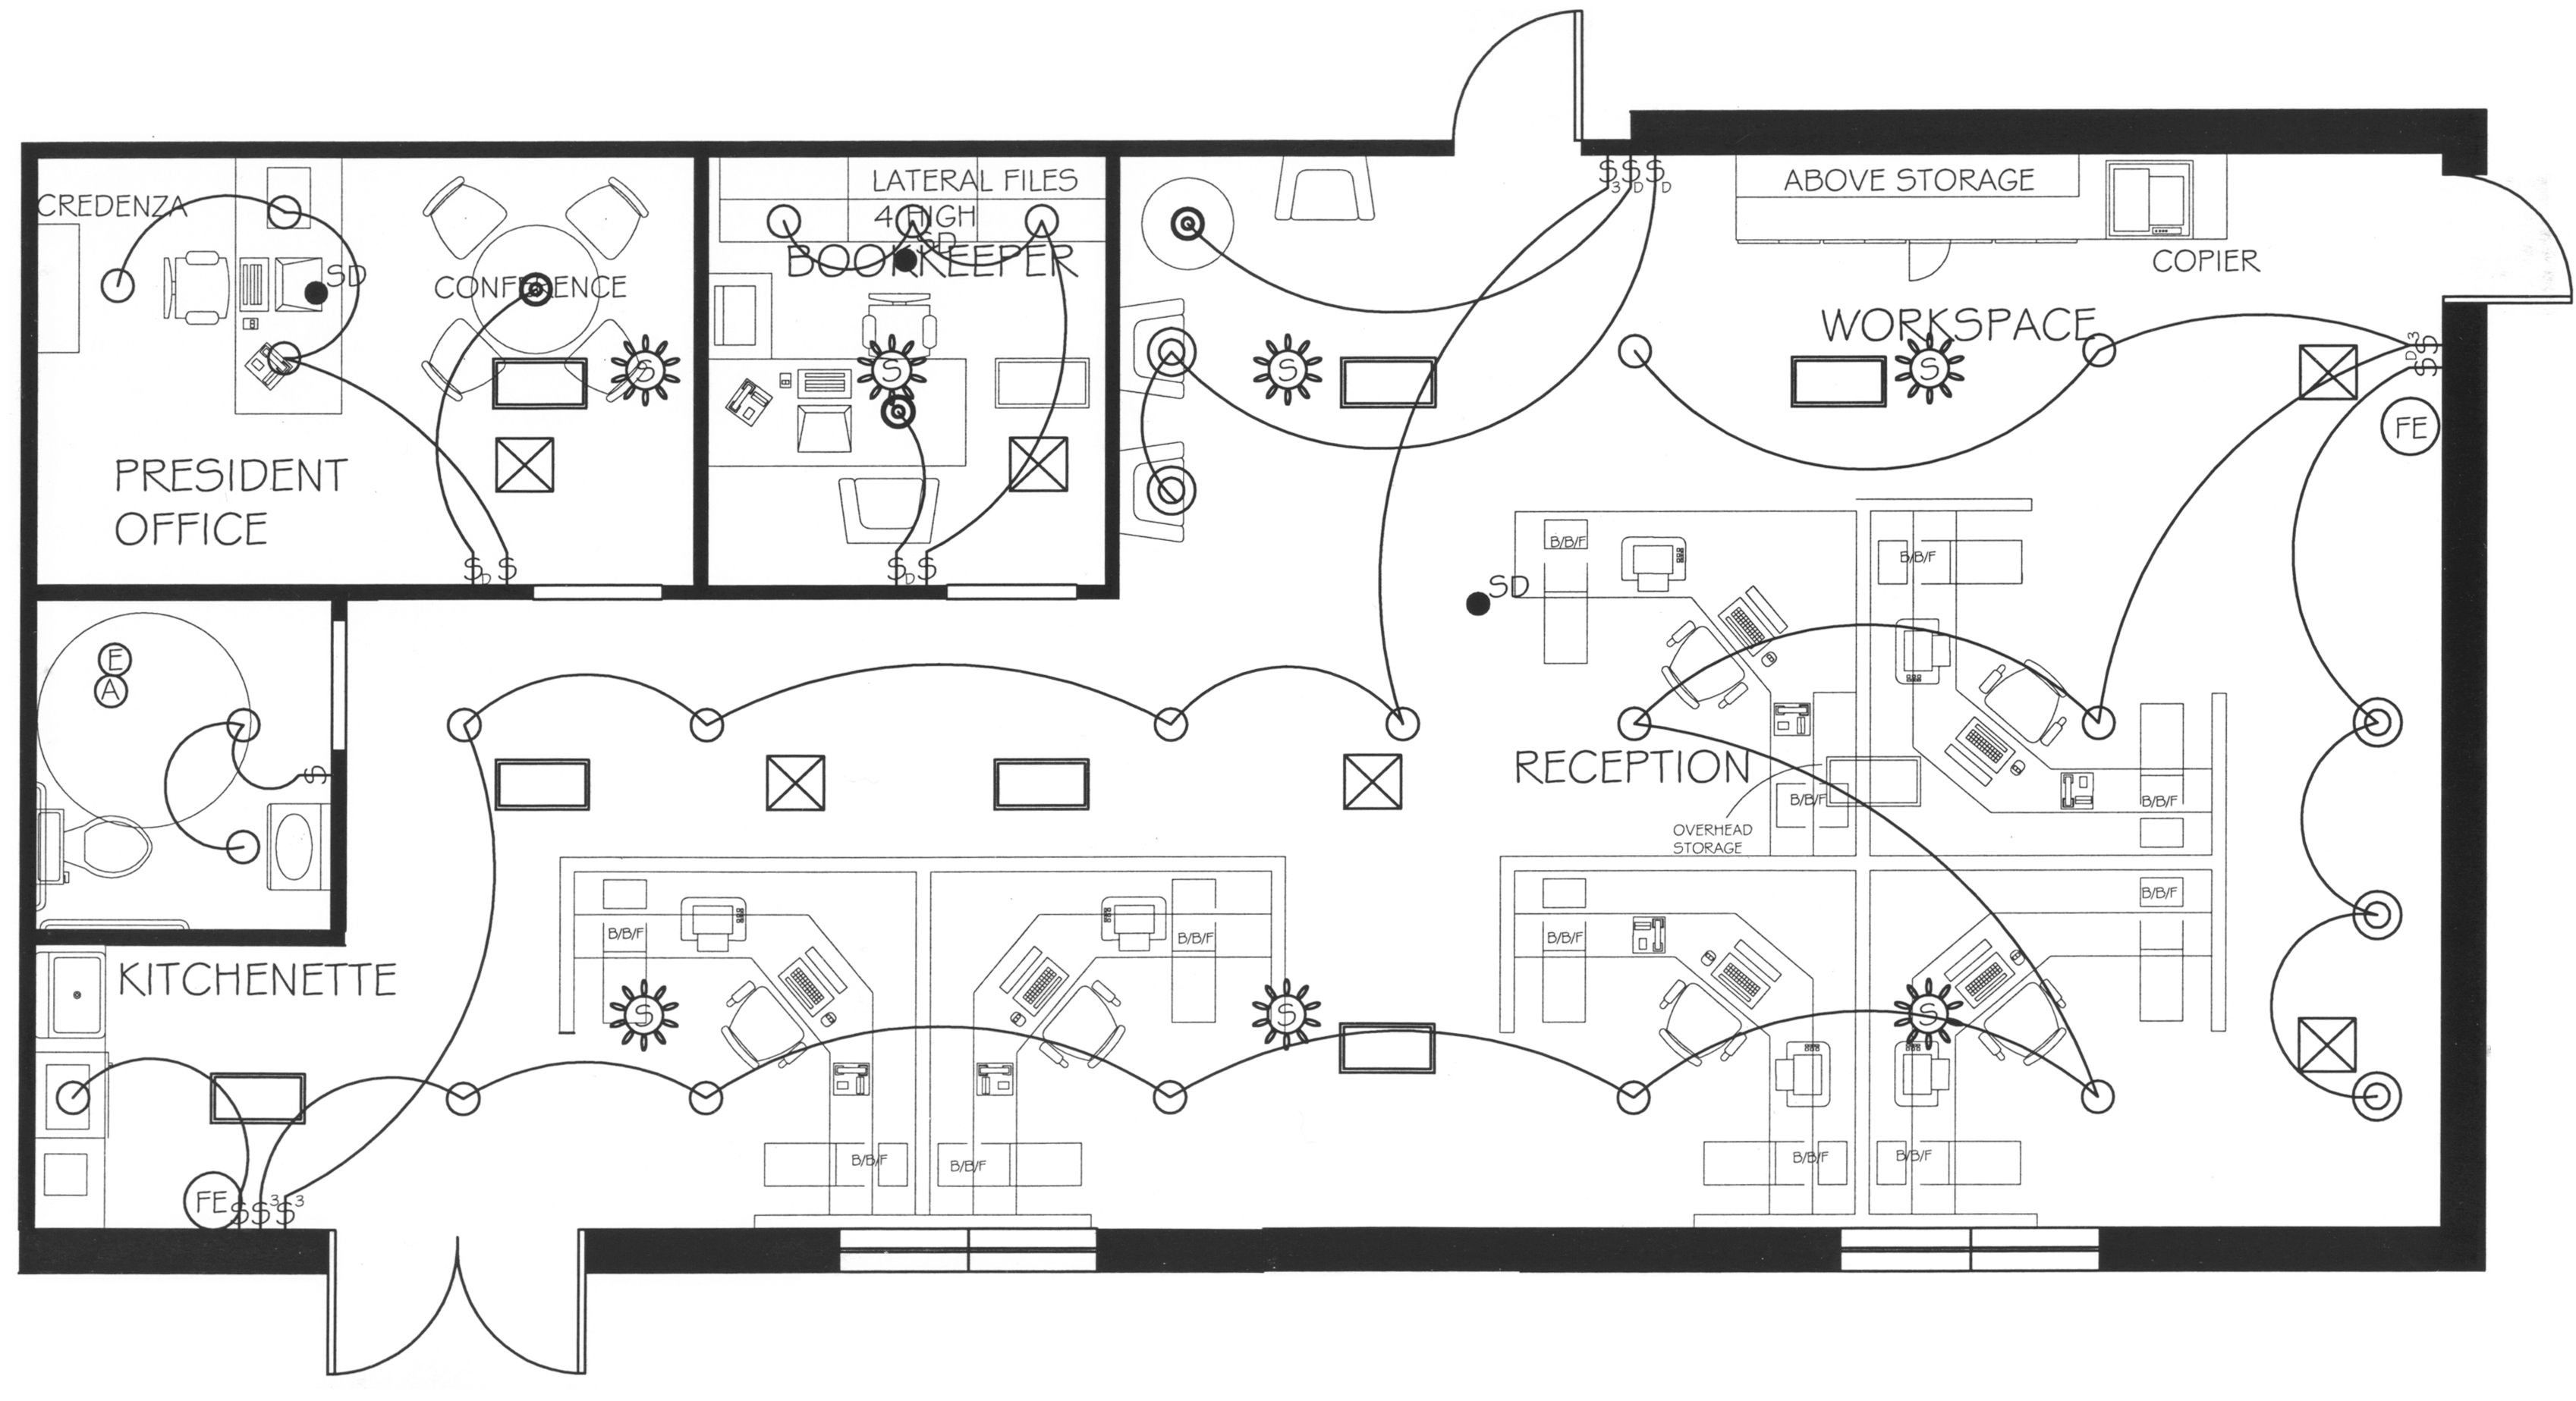 small resolution of new electrical floor plan sample diagram wiringdiagram diagramming diagramm visuals